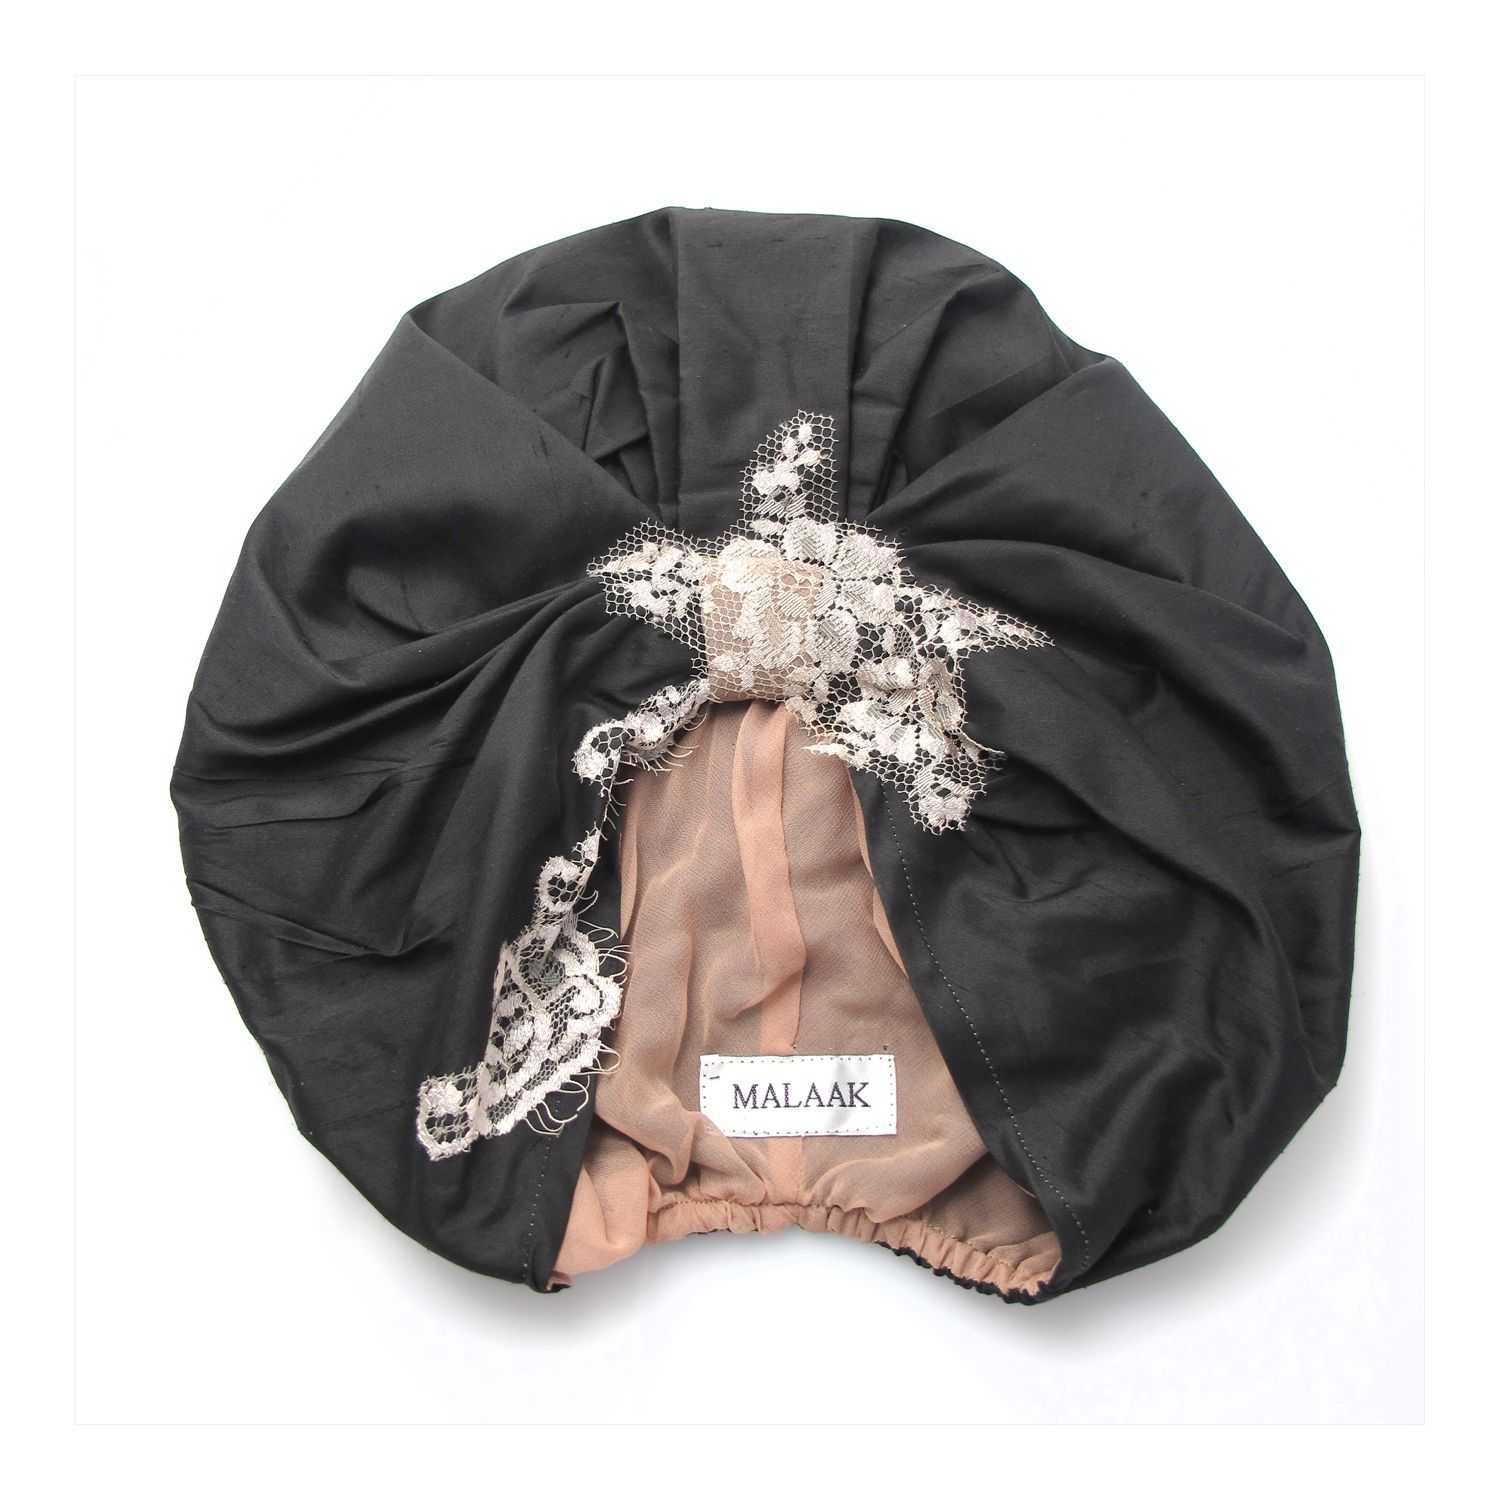 c5b982a5 Check out Dubai-based label Malaak's chic turban. The collection also  includes kaftans, abayas, and evening dresses combining Khaleeji culture  and 60s ...